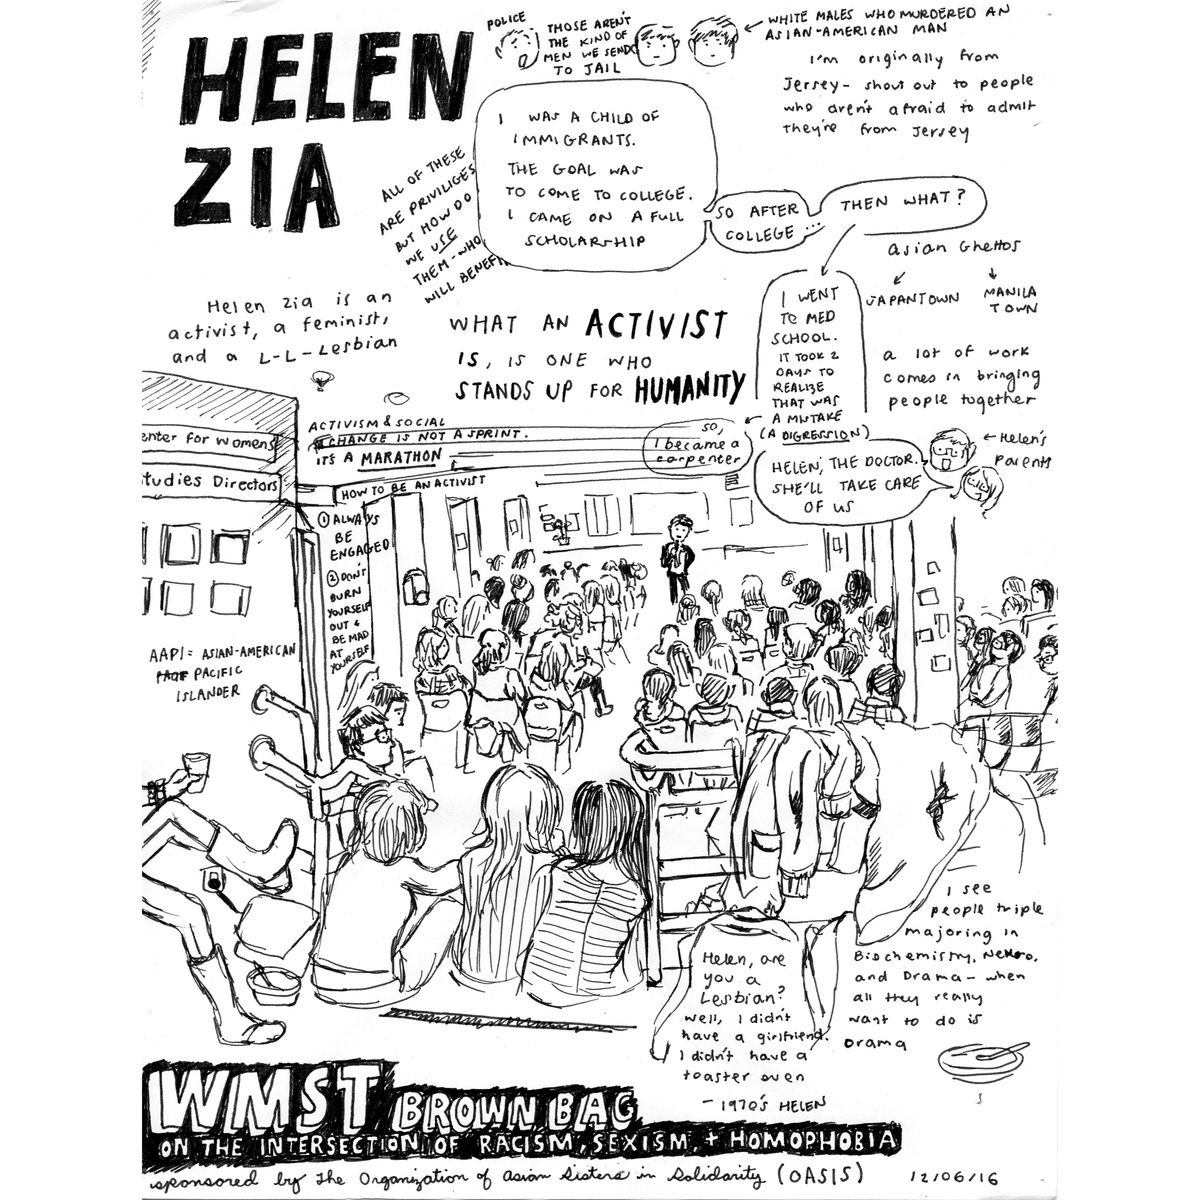 Notes on Helen Zia